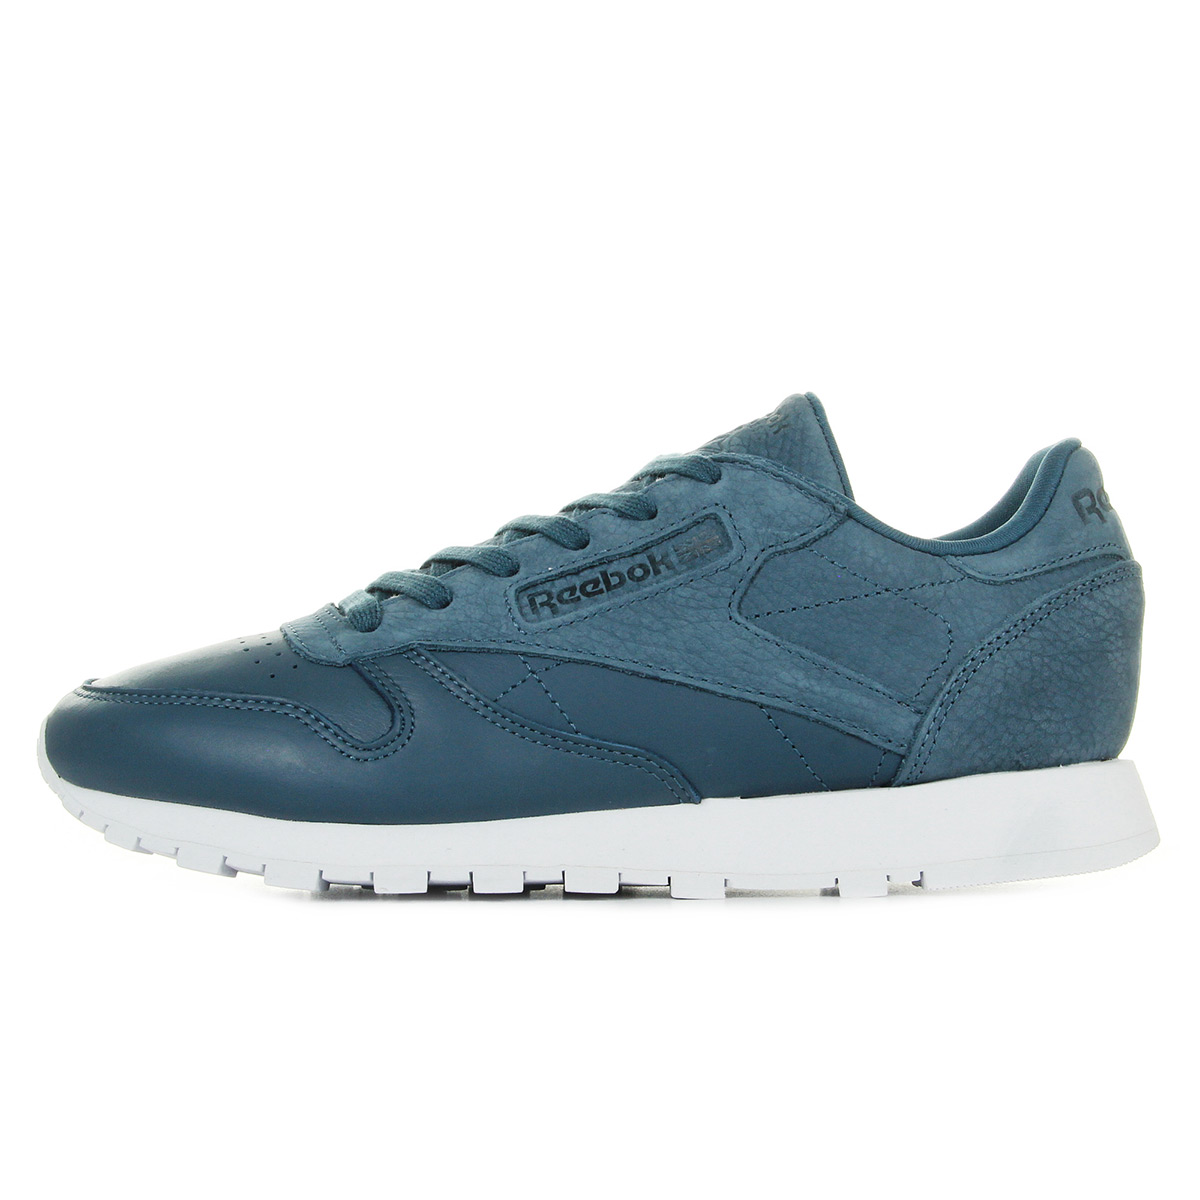 Reebok Cl Leather Sea You Later BD3108, Baskets mode femme